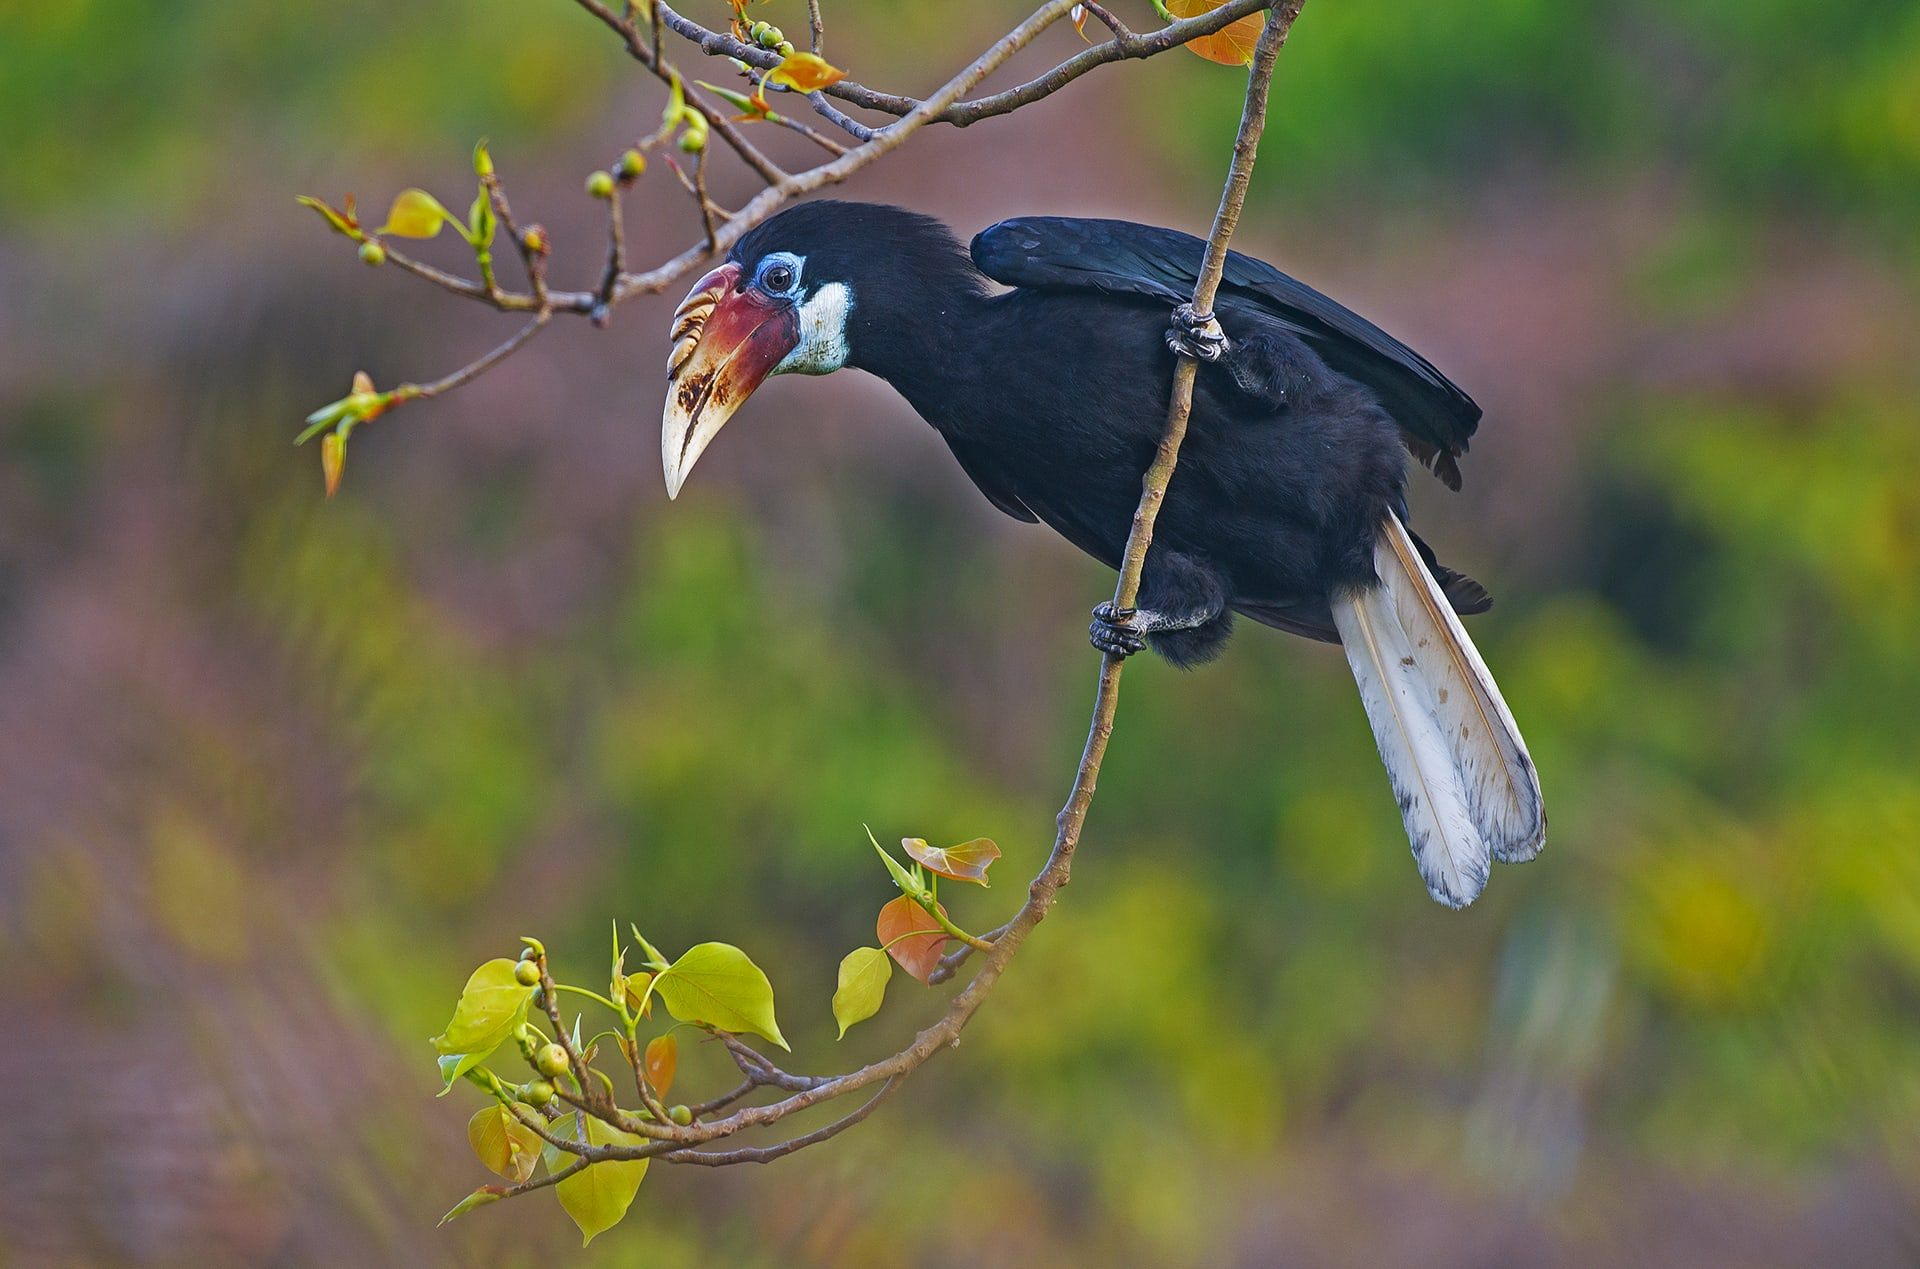 """India has nine species of hornbill, most of which face the threat of hunting and habitat loss. They mostly inhabit old-growth forests with high canopies, and steer clear of areas of human habitation. In contrast, """"the hornbills of Narcondam Island were quite comfortable with human presence,"""" says Dhritiman Mukherjee, """"and some of their nesting sites that were less than two metres from the ground."""""""